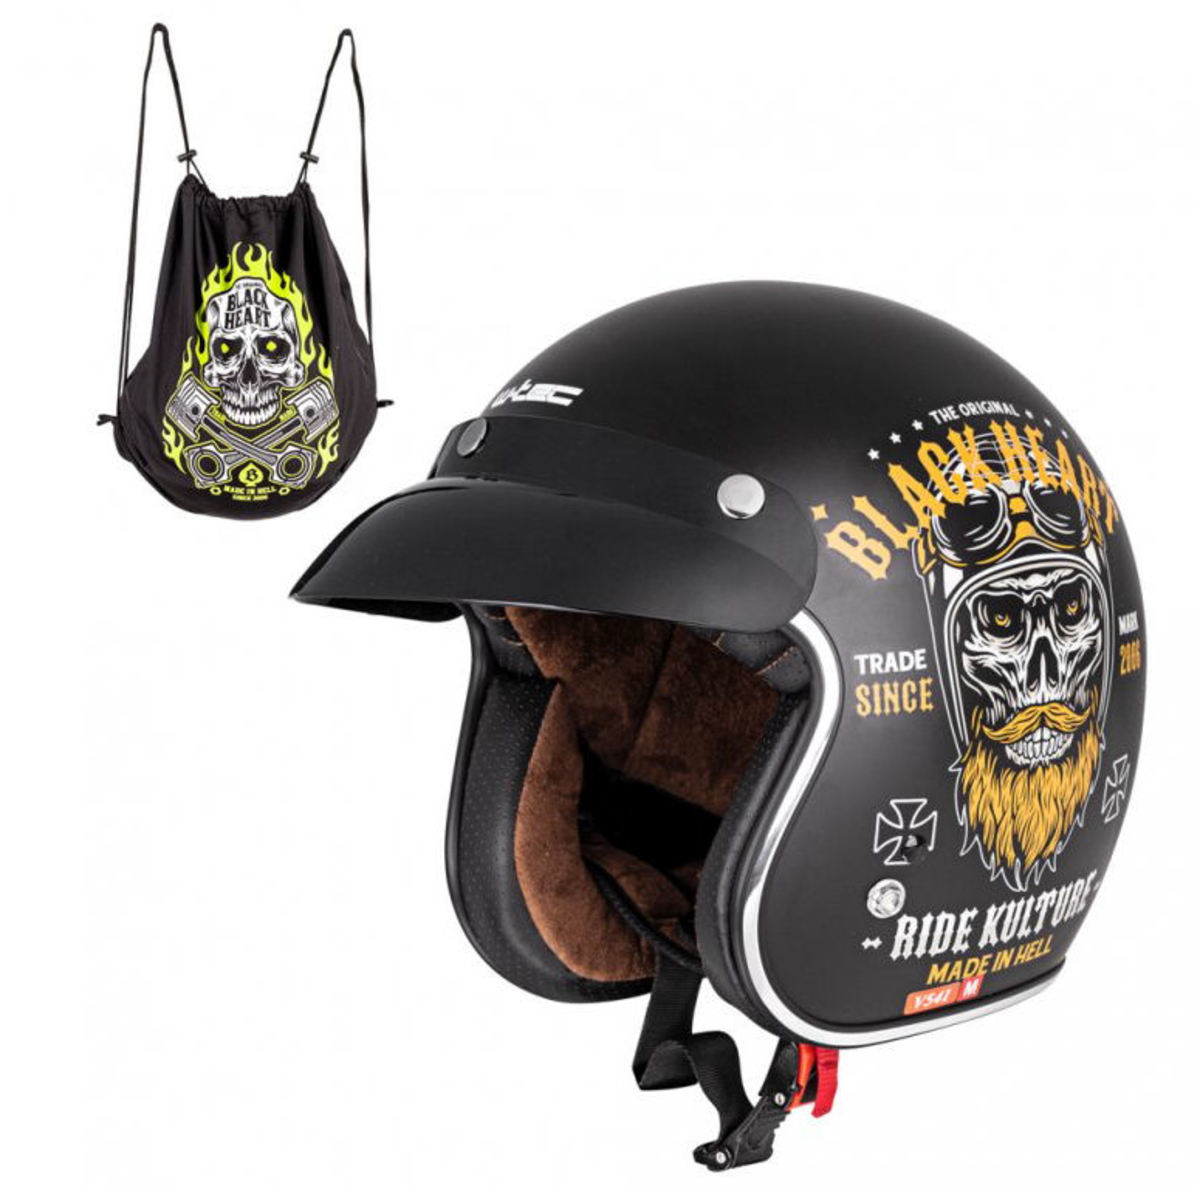 přilba BLACK HEART - KUSTOM RIDE - BLACK - 029-0013-BLK